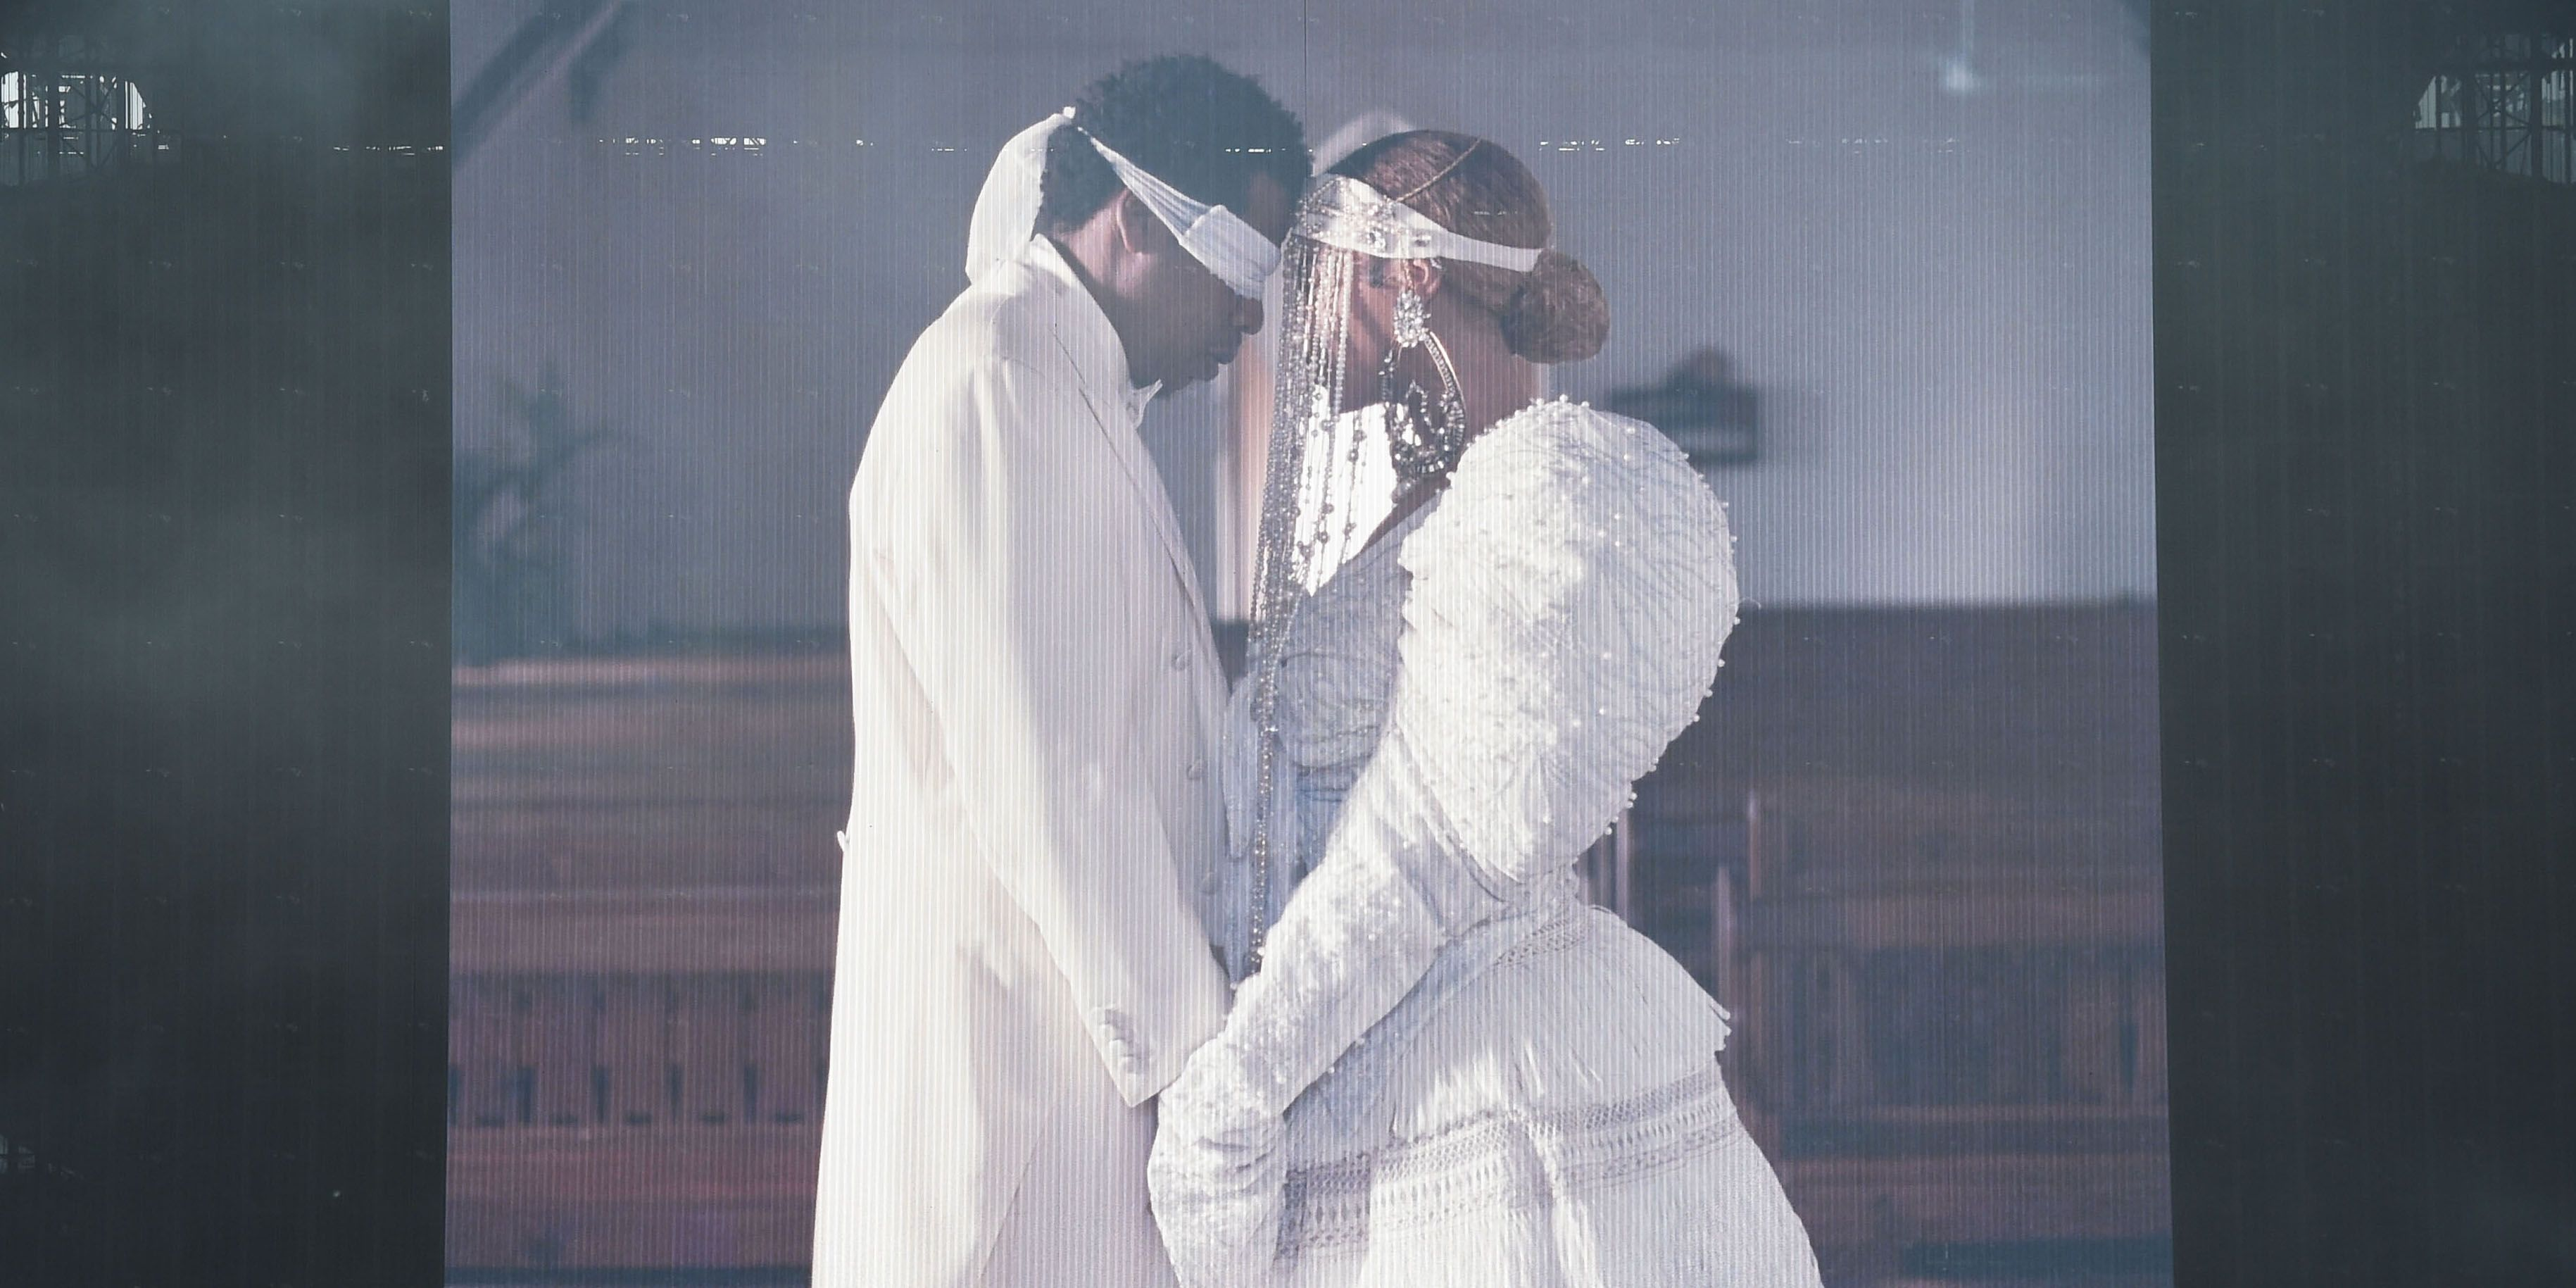 Beyonce And Jay Z Share Intimate Photos In Bed For Their On The Run Tour Book